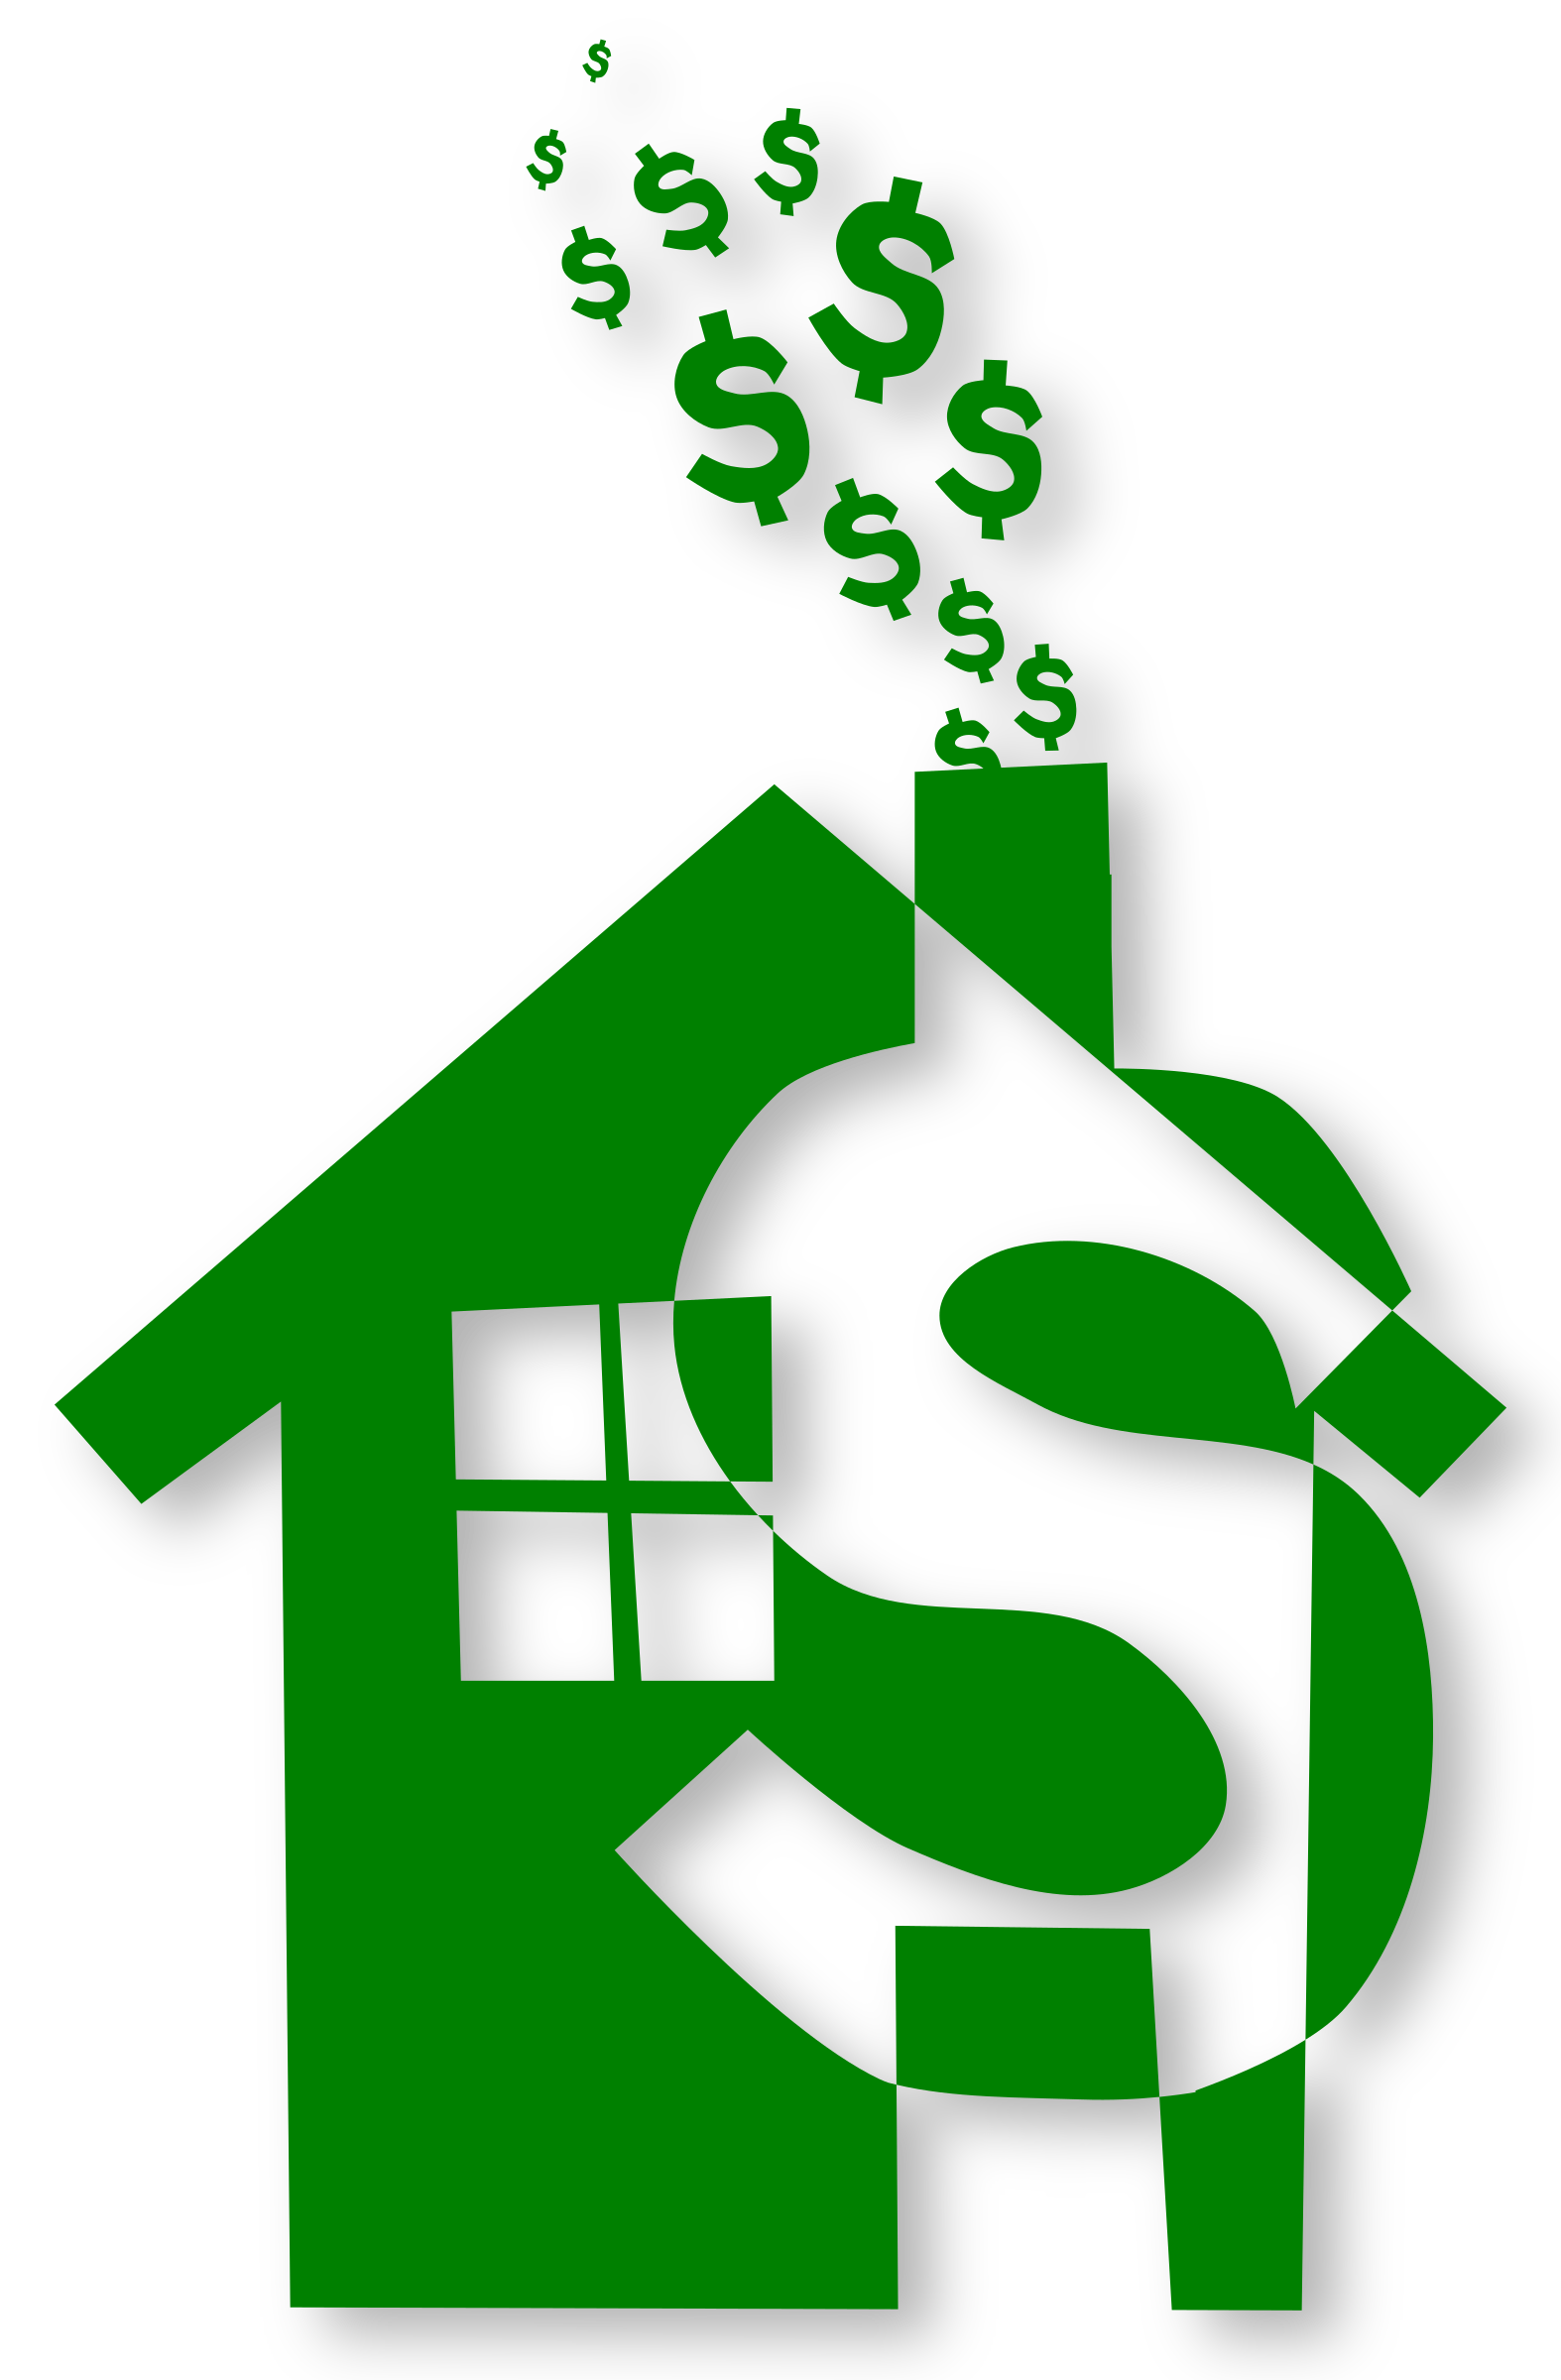 Clipart - Home expense